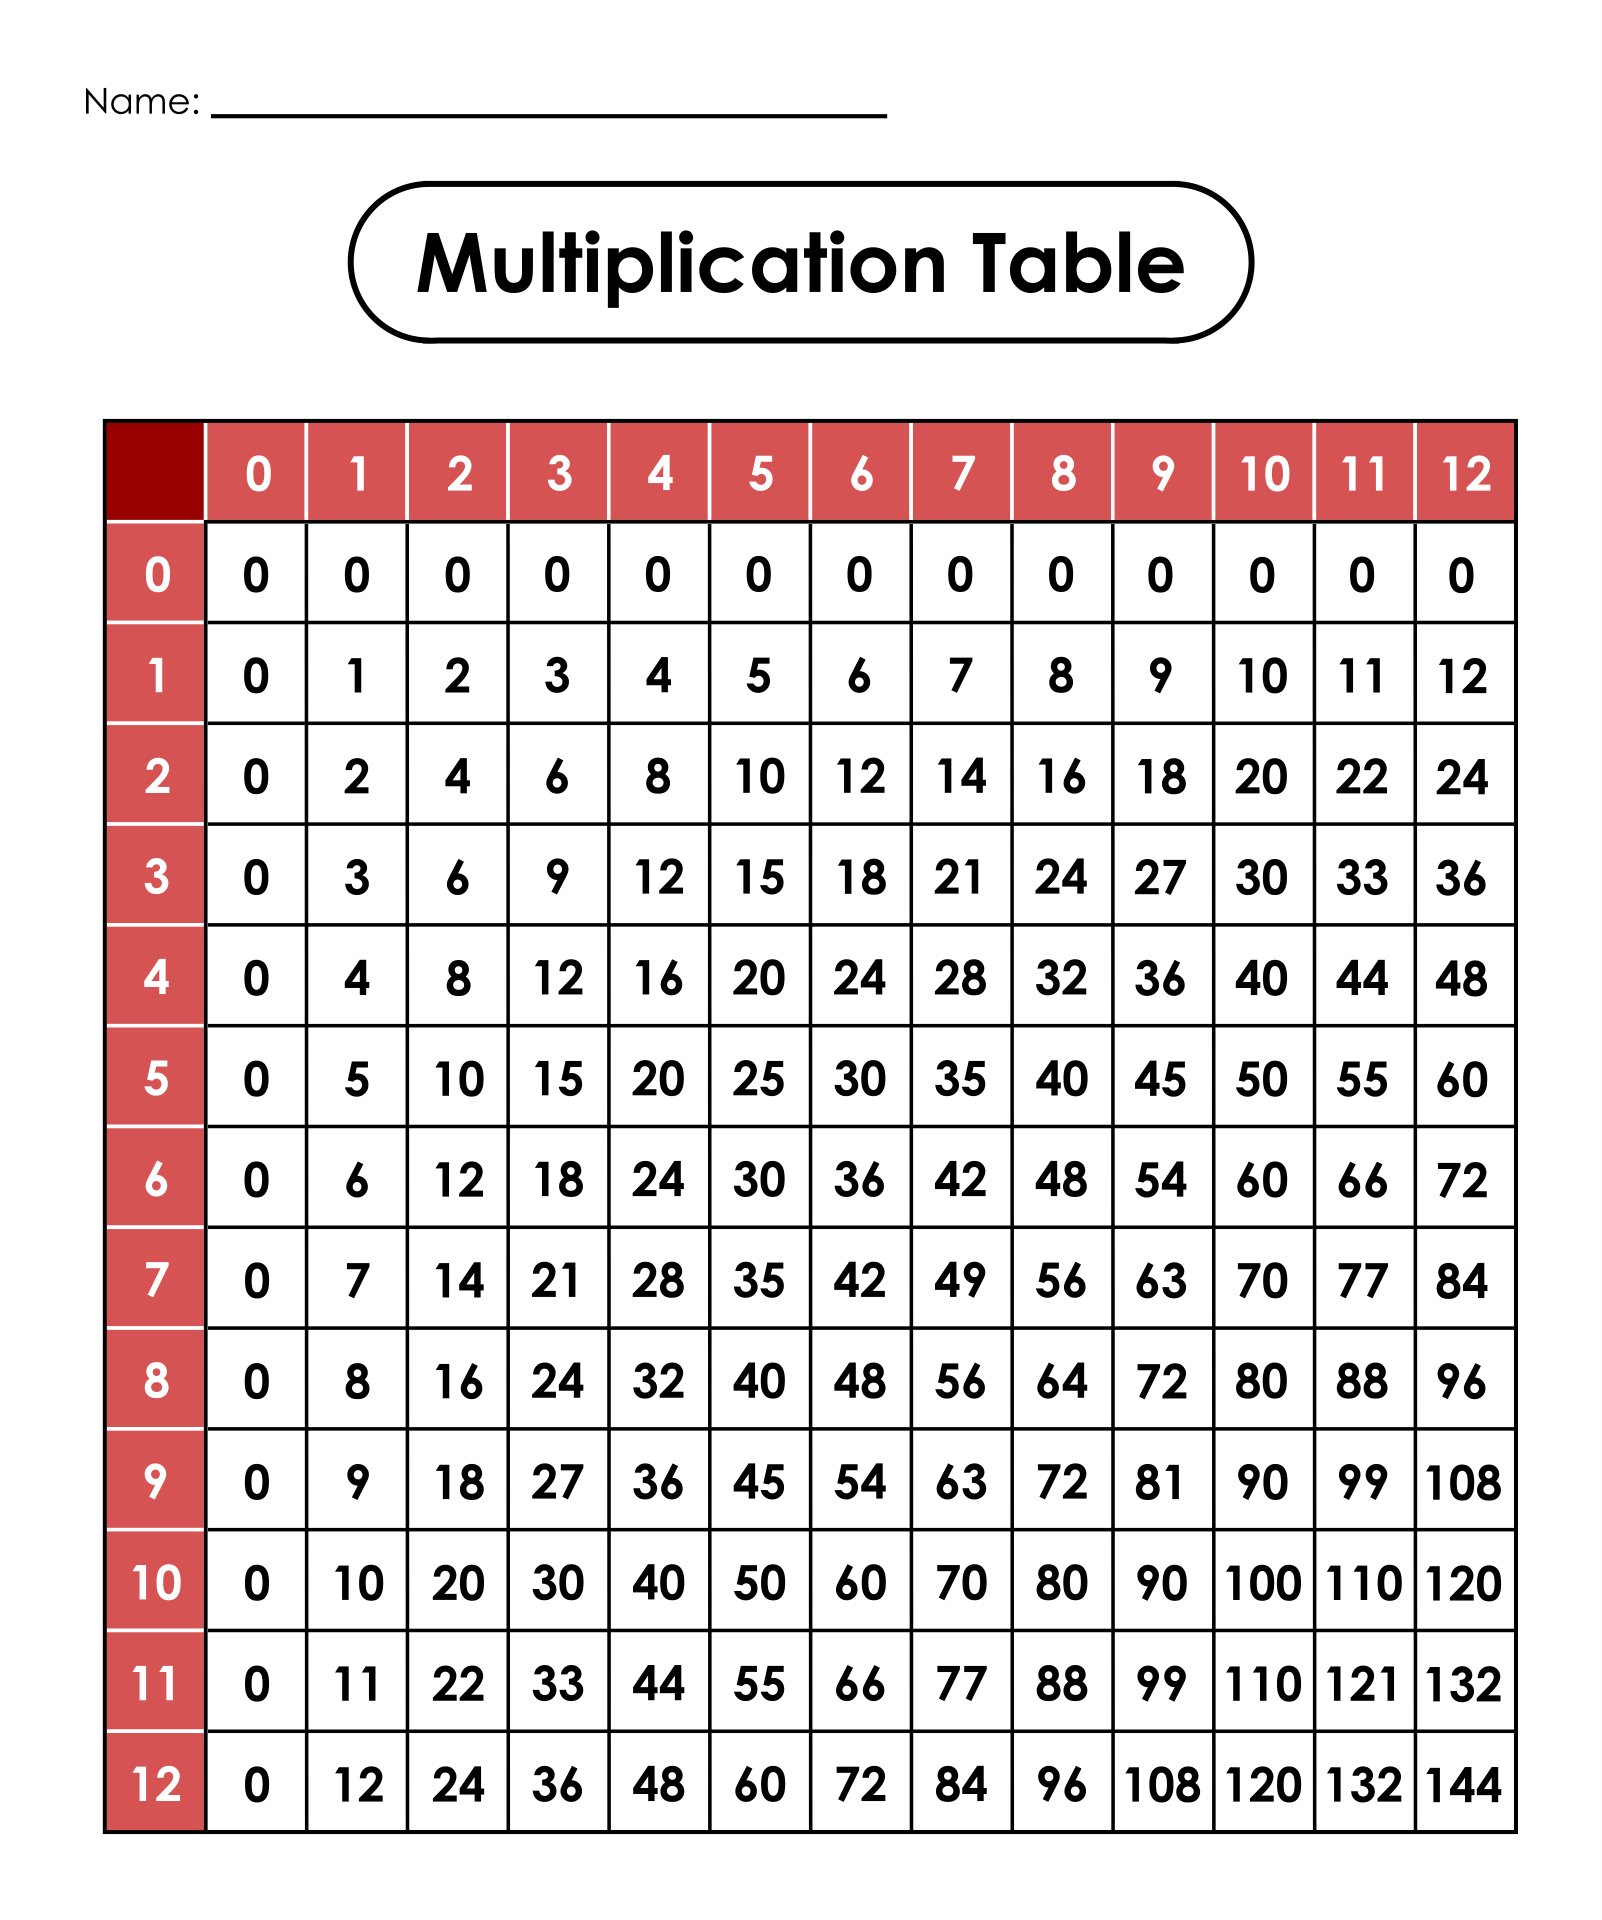 100 multiplication table choice image periodic table images 100x100 multiplication table gallery periodic table images negative multiplication table choice image periodic table images 100 gamestrikefo Gallery